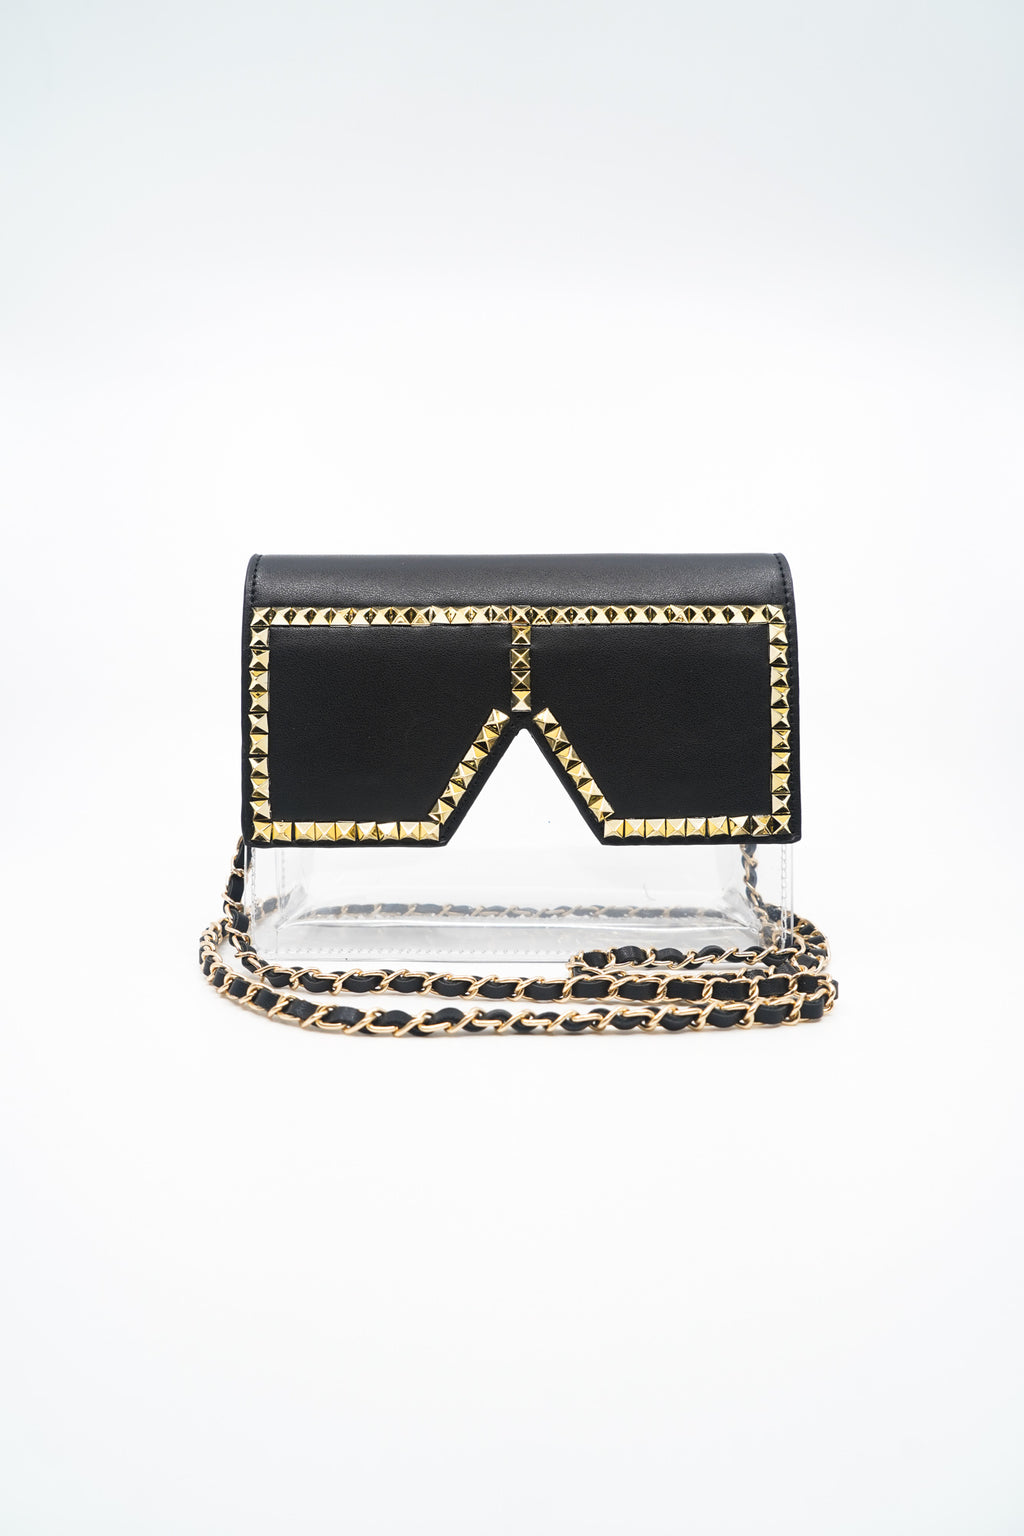 I'm A Star Clear Studded Glasses Bag - Fashion House USA